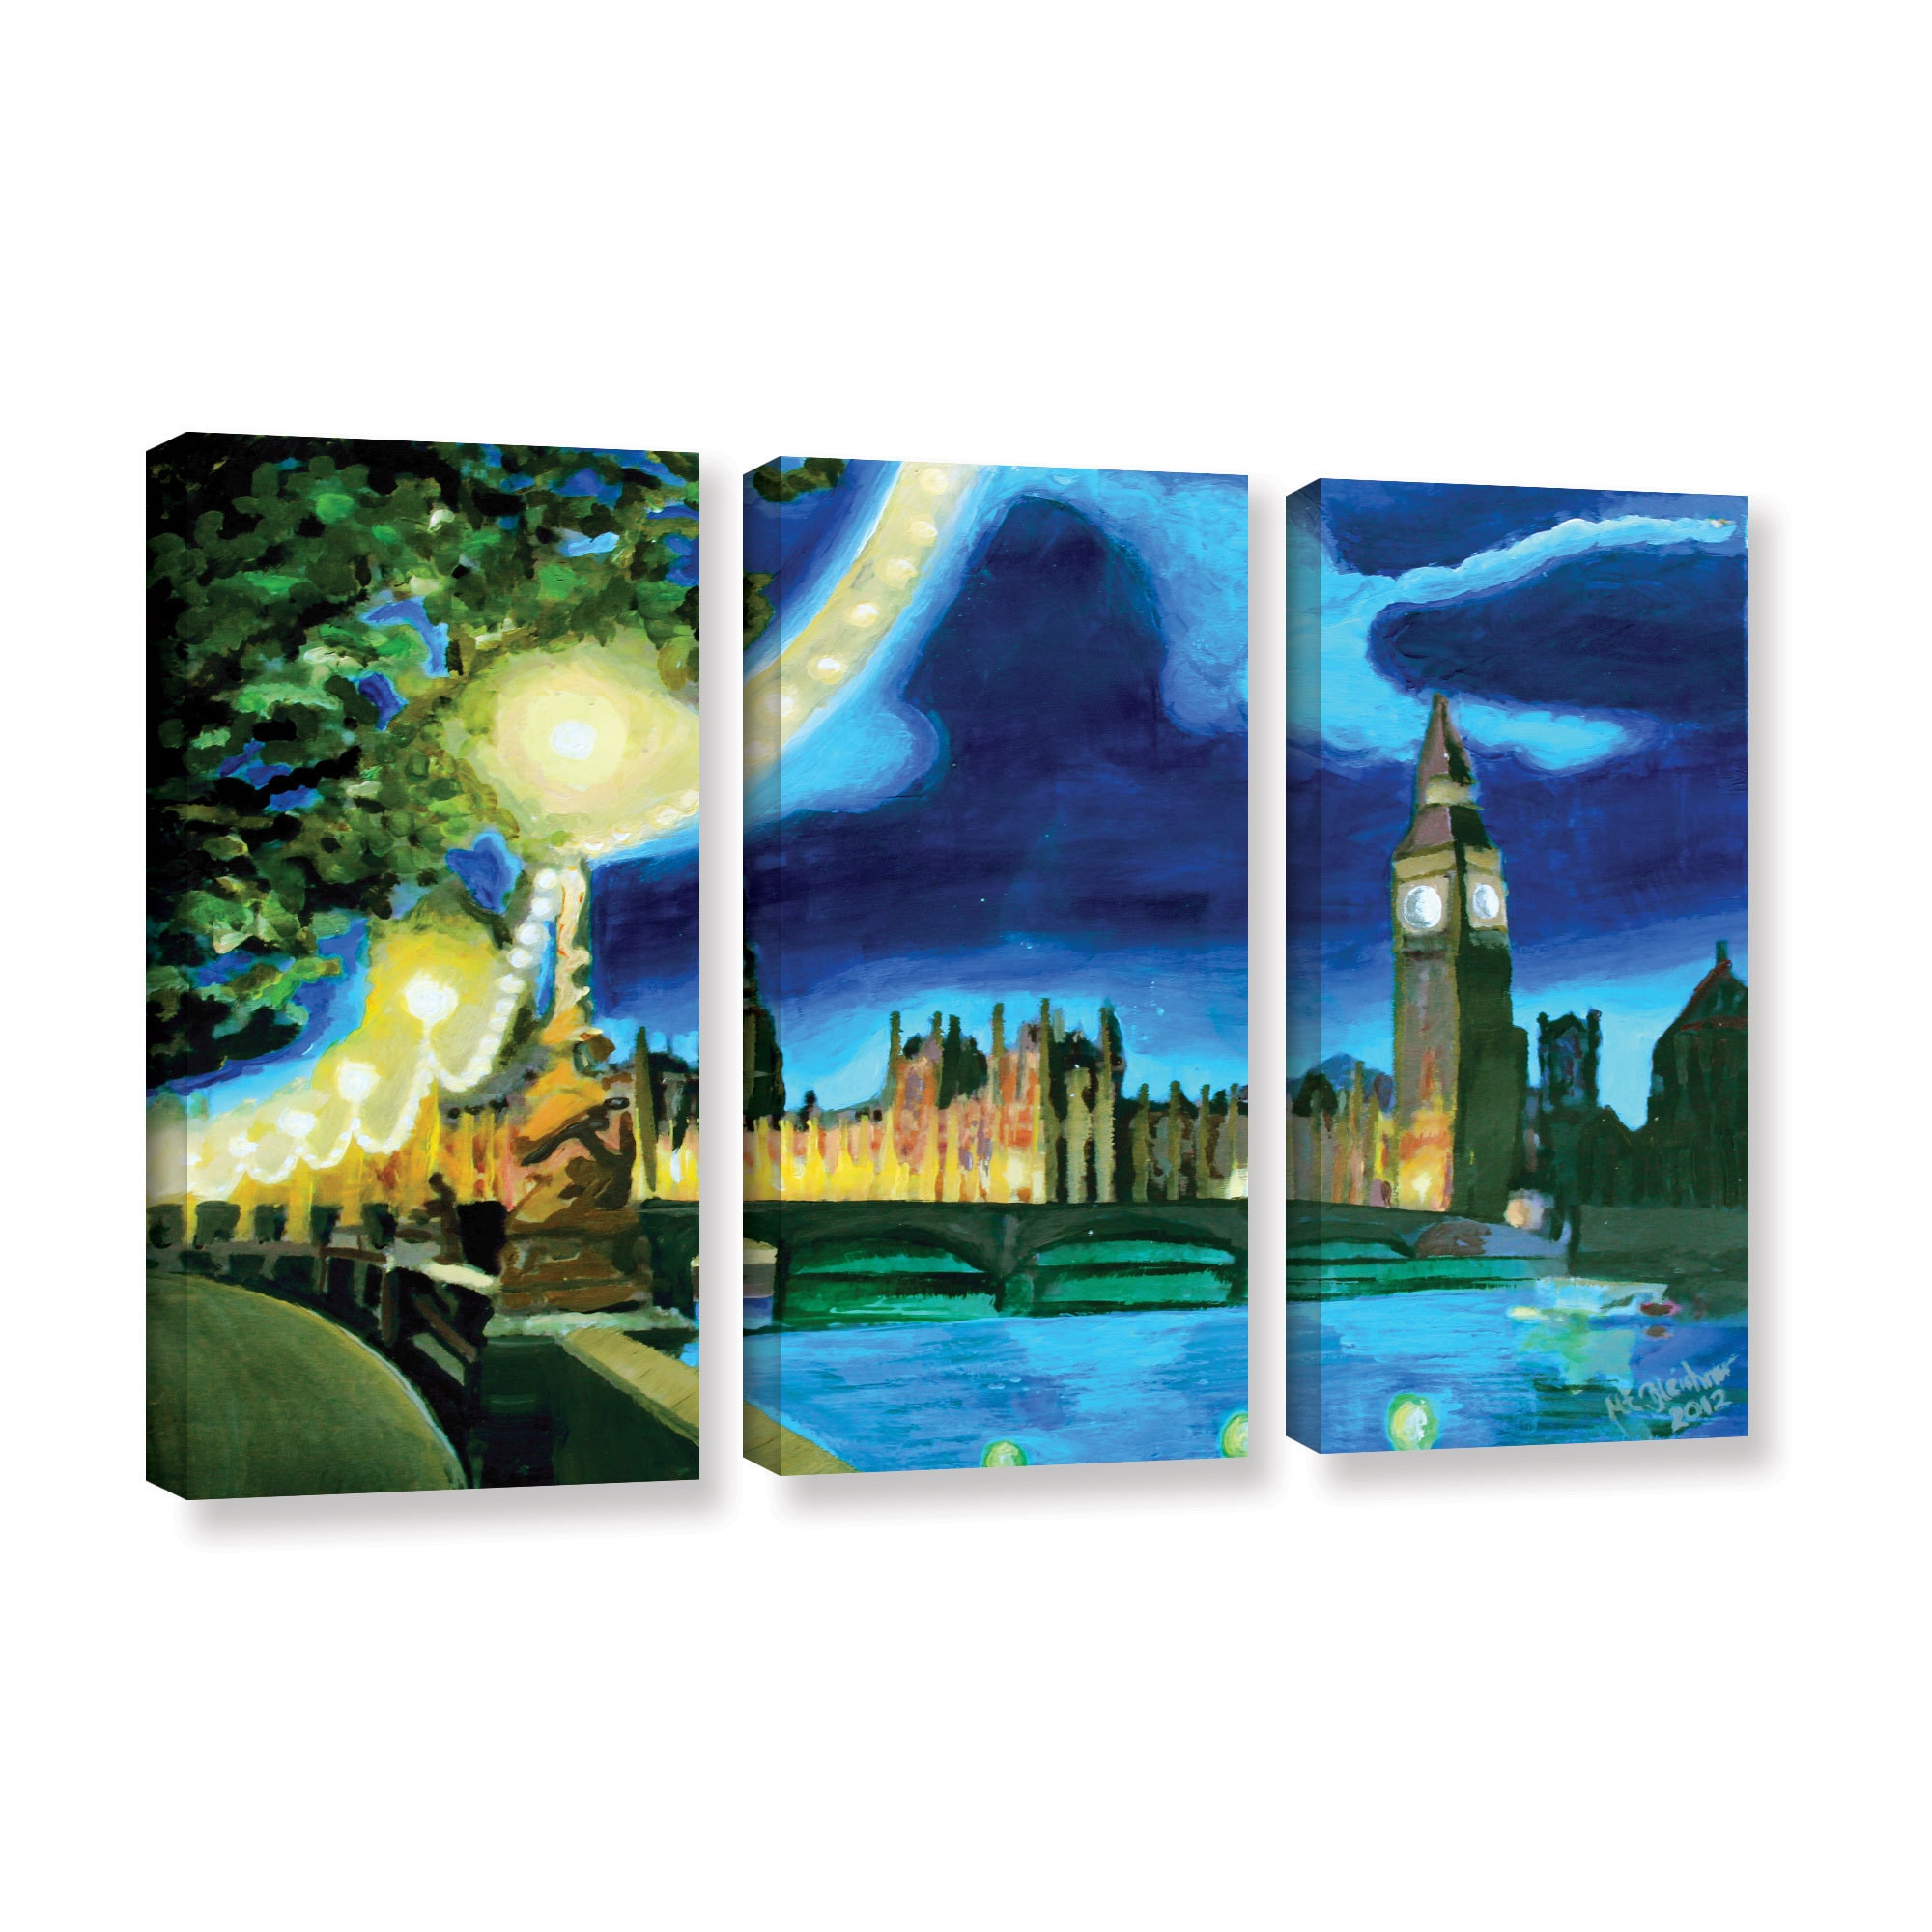 Artwall Marcus Martina Bleichner S London Big Ben And Parliament With Thames 3 Piece Gallery Wrapped Canvas Set Multi On Sale Overstock 11375365